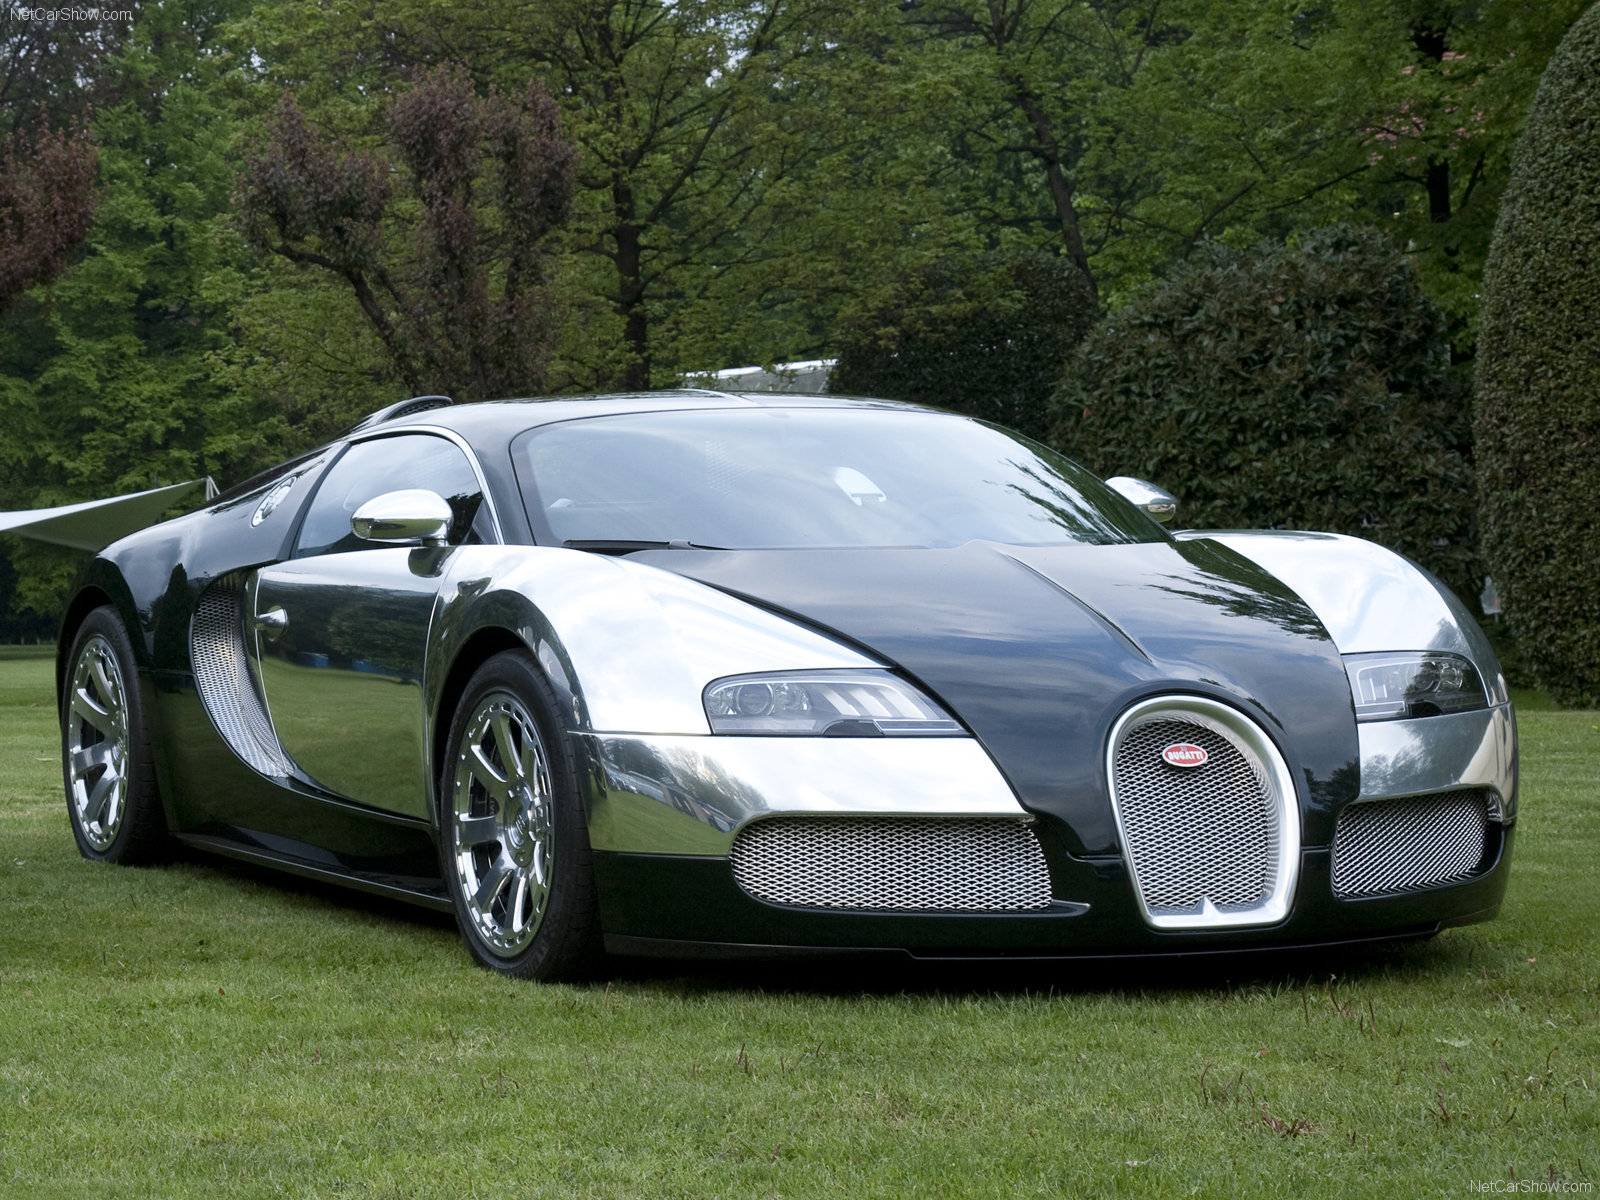 Adorn your desktop screen with attractive Bugatti car wallpapers 1600x1200